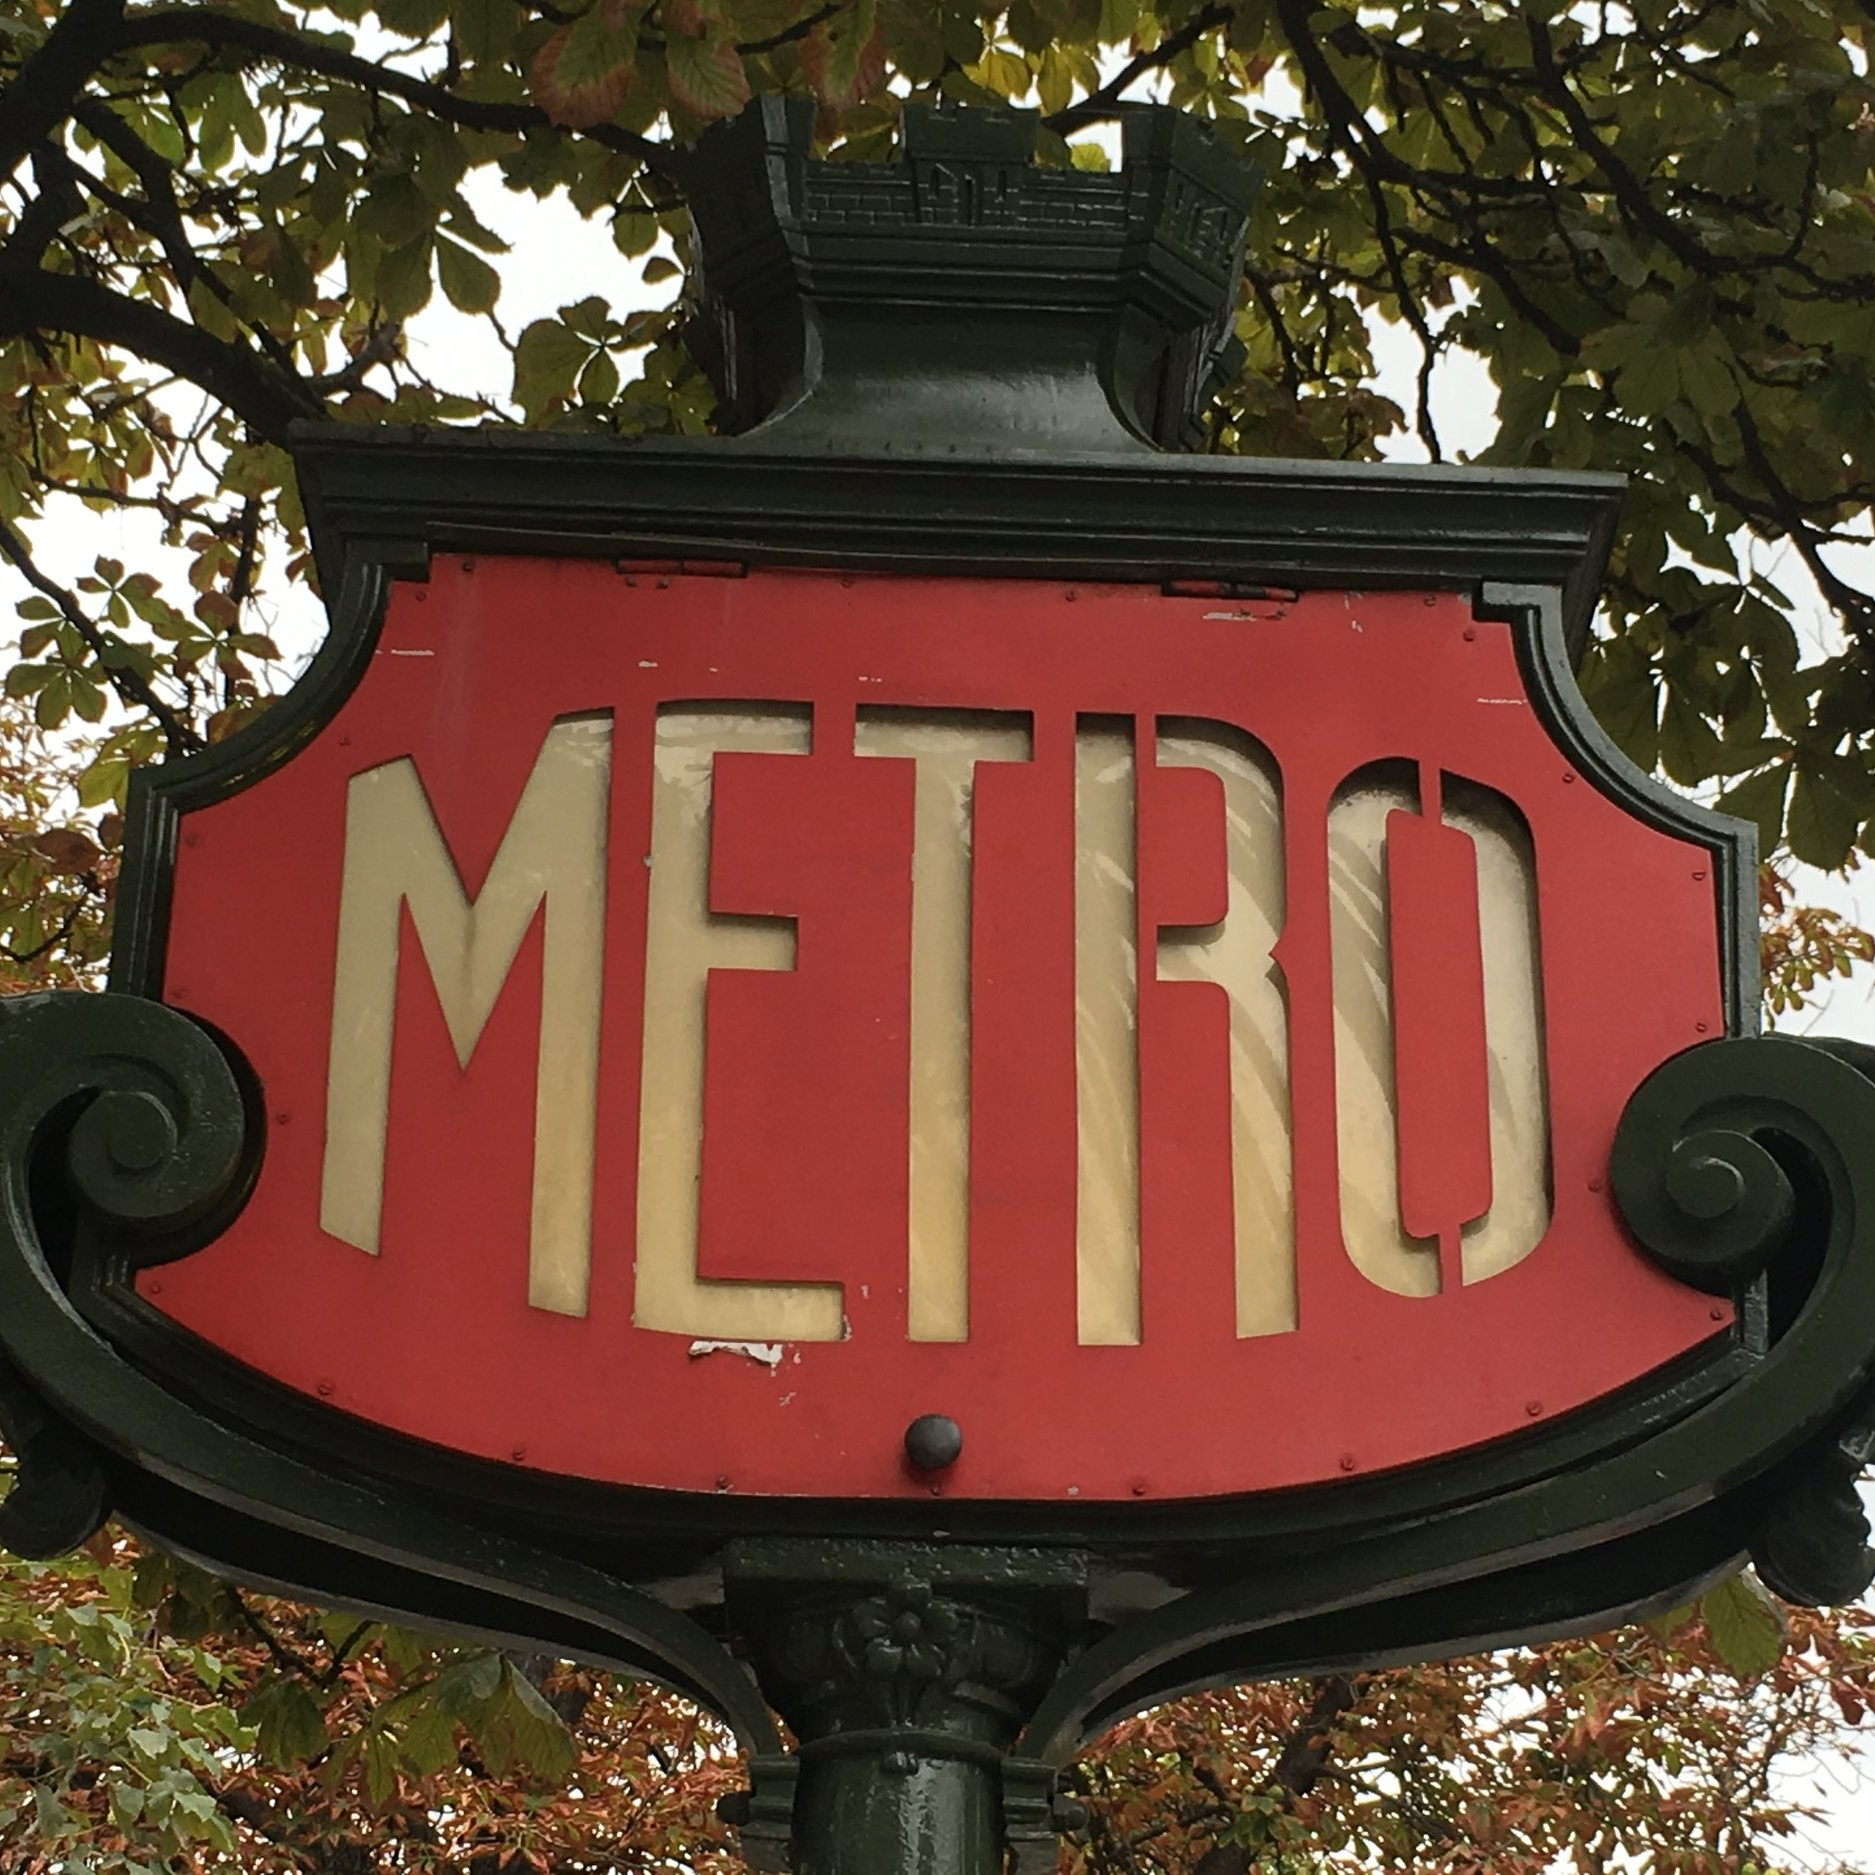 Metro, Paris by The Doubtful Traveller